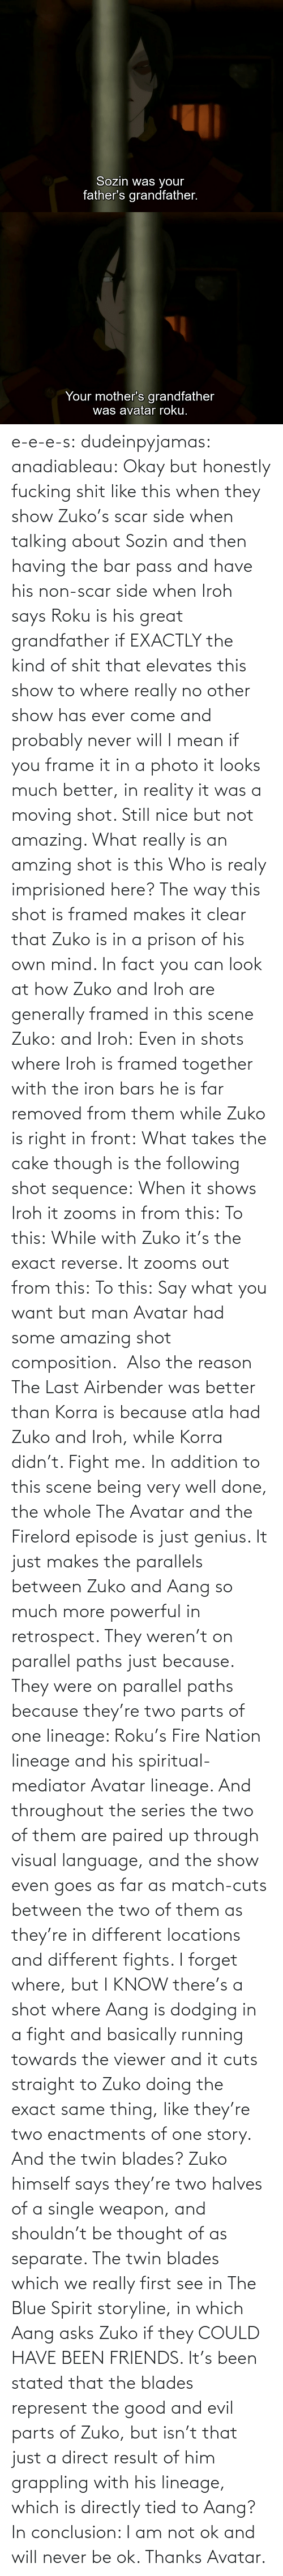 Mind: e-e-e-s: dudeinpyjamas:   anadiableau: Okay but honestly fucking shit like this when they show Zuko's scar side when talking about Sozin and then having the bar pass and have his non-scar side when Iroh says Roku is his great grandfather if EXACTLY the kind of shit that elevates this show to where really no other show has ever come and probably never will I mean if you frame it in a photo it looks much better, in reality it was a moving shot. Still nice but not amazing. What really is an amzing shot is this Who is realy imprisioned here? The way this shot is framed makes it clear that Zuko is in a prison of his own mind. In fact you can look at how Zuko and Iroh are generally framed in this scene Zuko: and Iroh: Even in shots where Iroh is framed together with the iron bars he is far removed from them while Zuko is right in front:  What takes the cake though is the following shot sequence: When it shows Iroh it zooms in from this: To this: While with Zuko it's the exact reverse. It zooms out from this: To this: Say what you want but man Avatar had some amazing shot composition.   Also the reason The Last Airbender was better than Korra is because atla had Zuko and Iroh, while Korra didn't. Fight me.    In addition to this scene being very well done, the whole The Avatar and the Firelord episode is just genius.  It just makes the parallels between Zuko and Aang so much more powerful in retrospect.  They weren't on parallel paths just because.  They were on parallel paths because they're two parts of one lineage: Roku's Fire Nation lineage and his spiritual-mediator Avatar lineage.  And throughout the series the two of them are paired up through visual language, and the show even goes as far as match-cuts between the two of them as they're in different locations and different fights.  I forget where, but I KNOW there's a shot where Aang is dodging in a fight and basically running towards the viewer and it cuts straight to Zuko doing the exact same thing, like they're two enactments of one story.   And the twin blades?  Zuko himself says they're two halves of a single weapon, and shouldn't be thought of as separate.  The twin blades which we really first see in The Blue Spirit storyline, in which Aang asks Zuko if they COULD HAVE BEEN FRIENDS.  It's been stated that the blades represent the good and evil parts of Zuko, but isn't that just a direct result of him grappling with his lineage, which is directly tied to Aang? In conclusion: I am not ok and will never be ok.  Thanks Avatar.